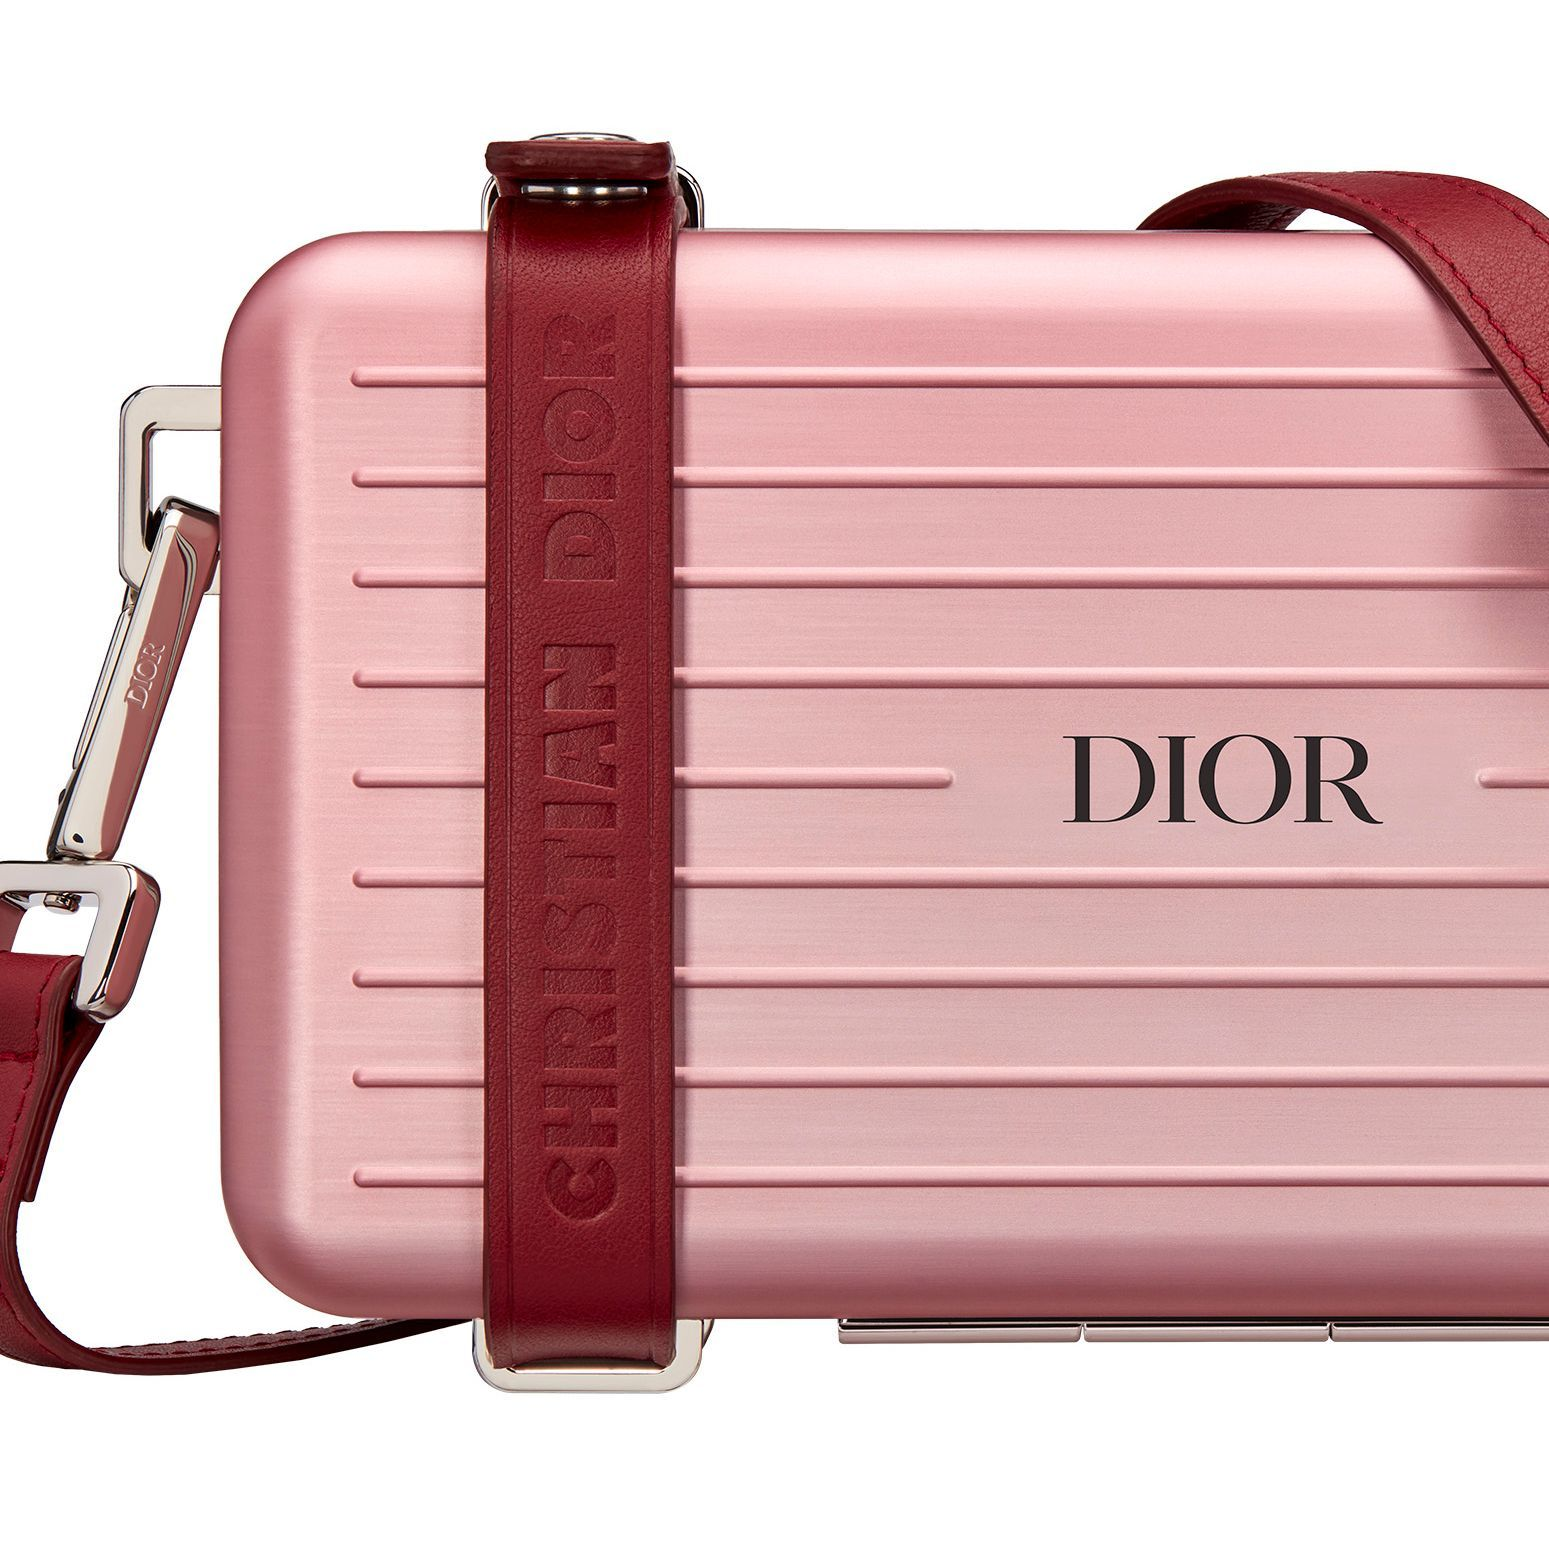 DIOR and RIMOWA 聯名系列